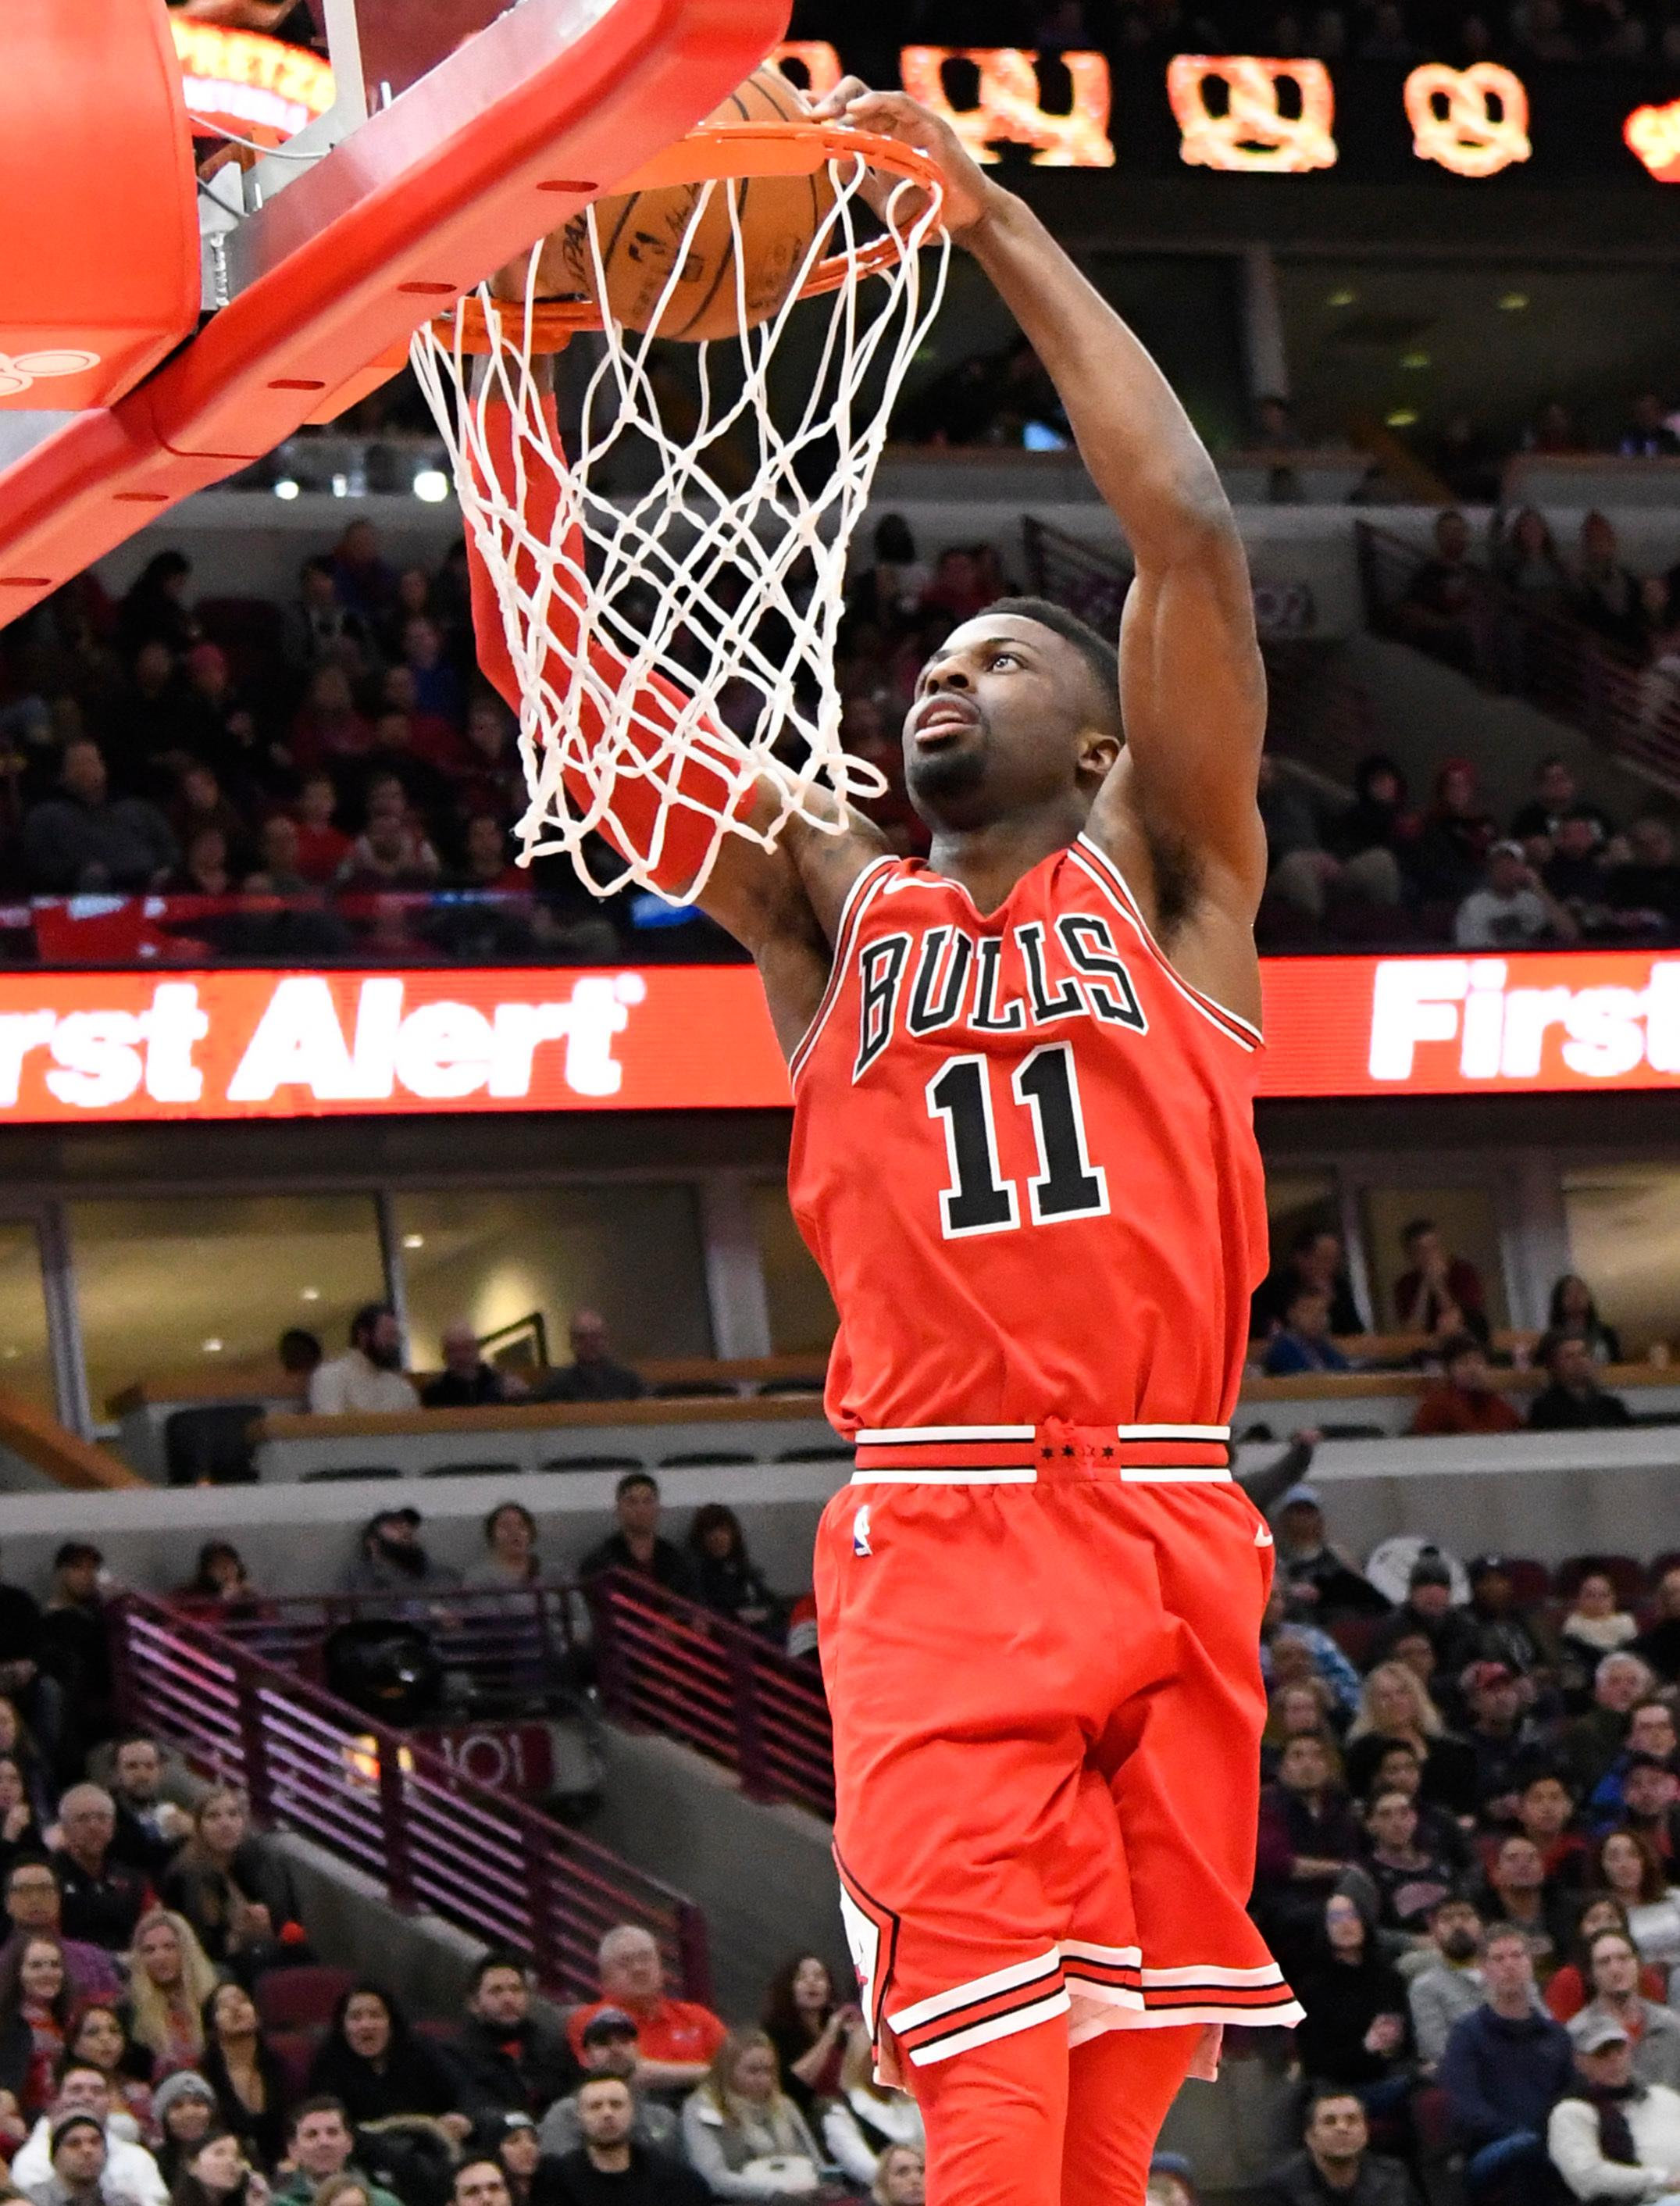 Chicago Bulls guard David Nwaba (11) dunks the ball against the Portland Trail Blazers during the first half of an NBA basketball game, Monday, Jan. 1, 2018, in Chicago. (AP Photo/David Banks)